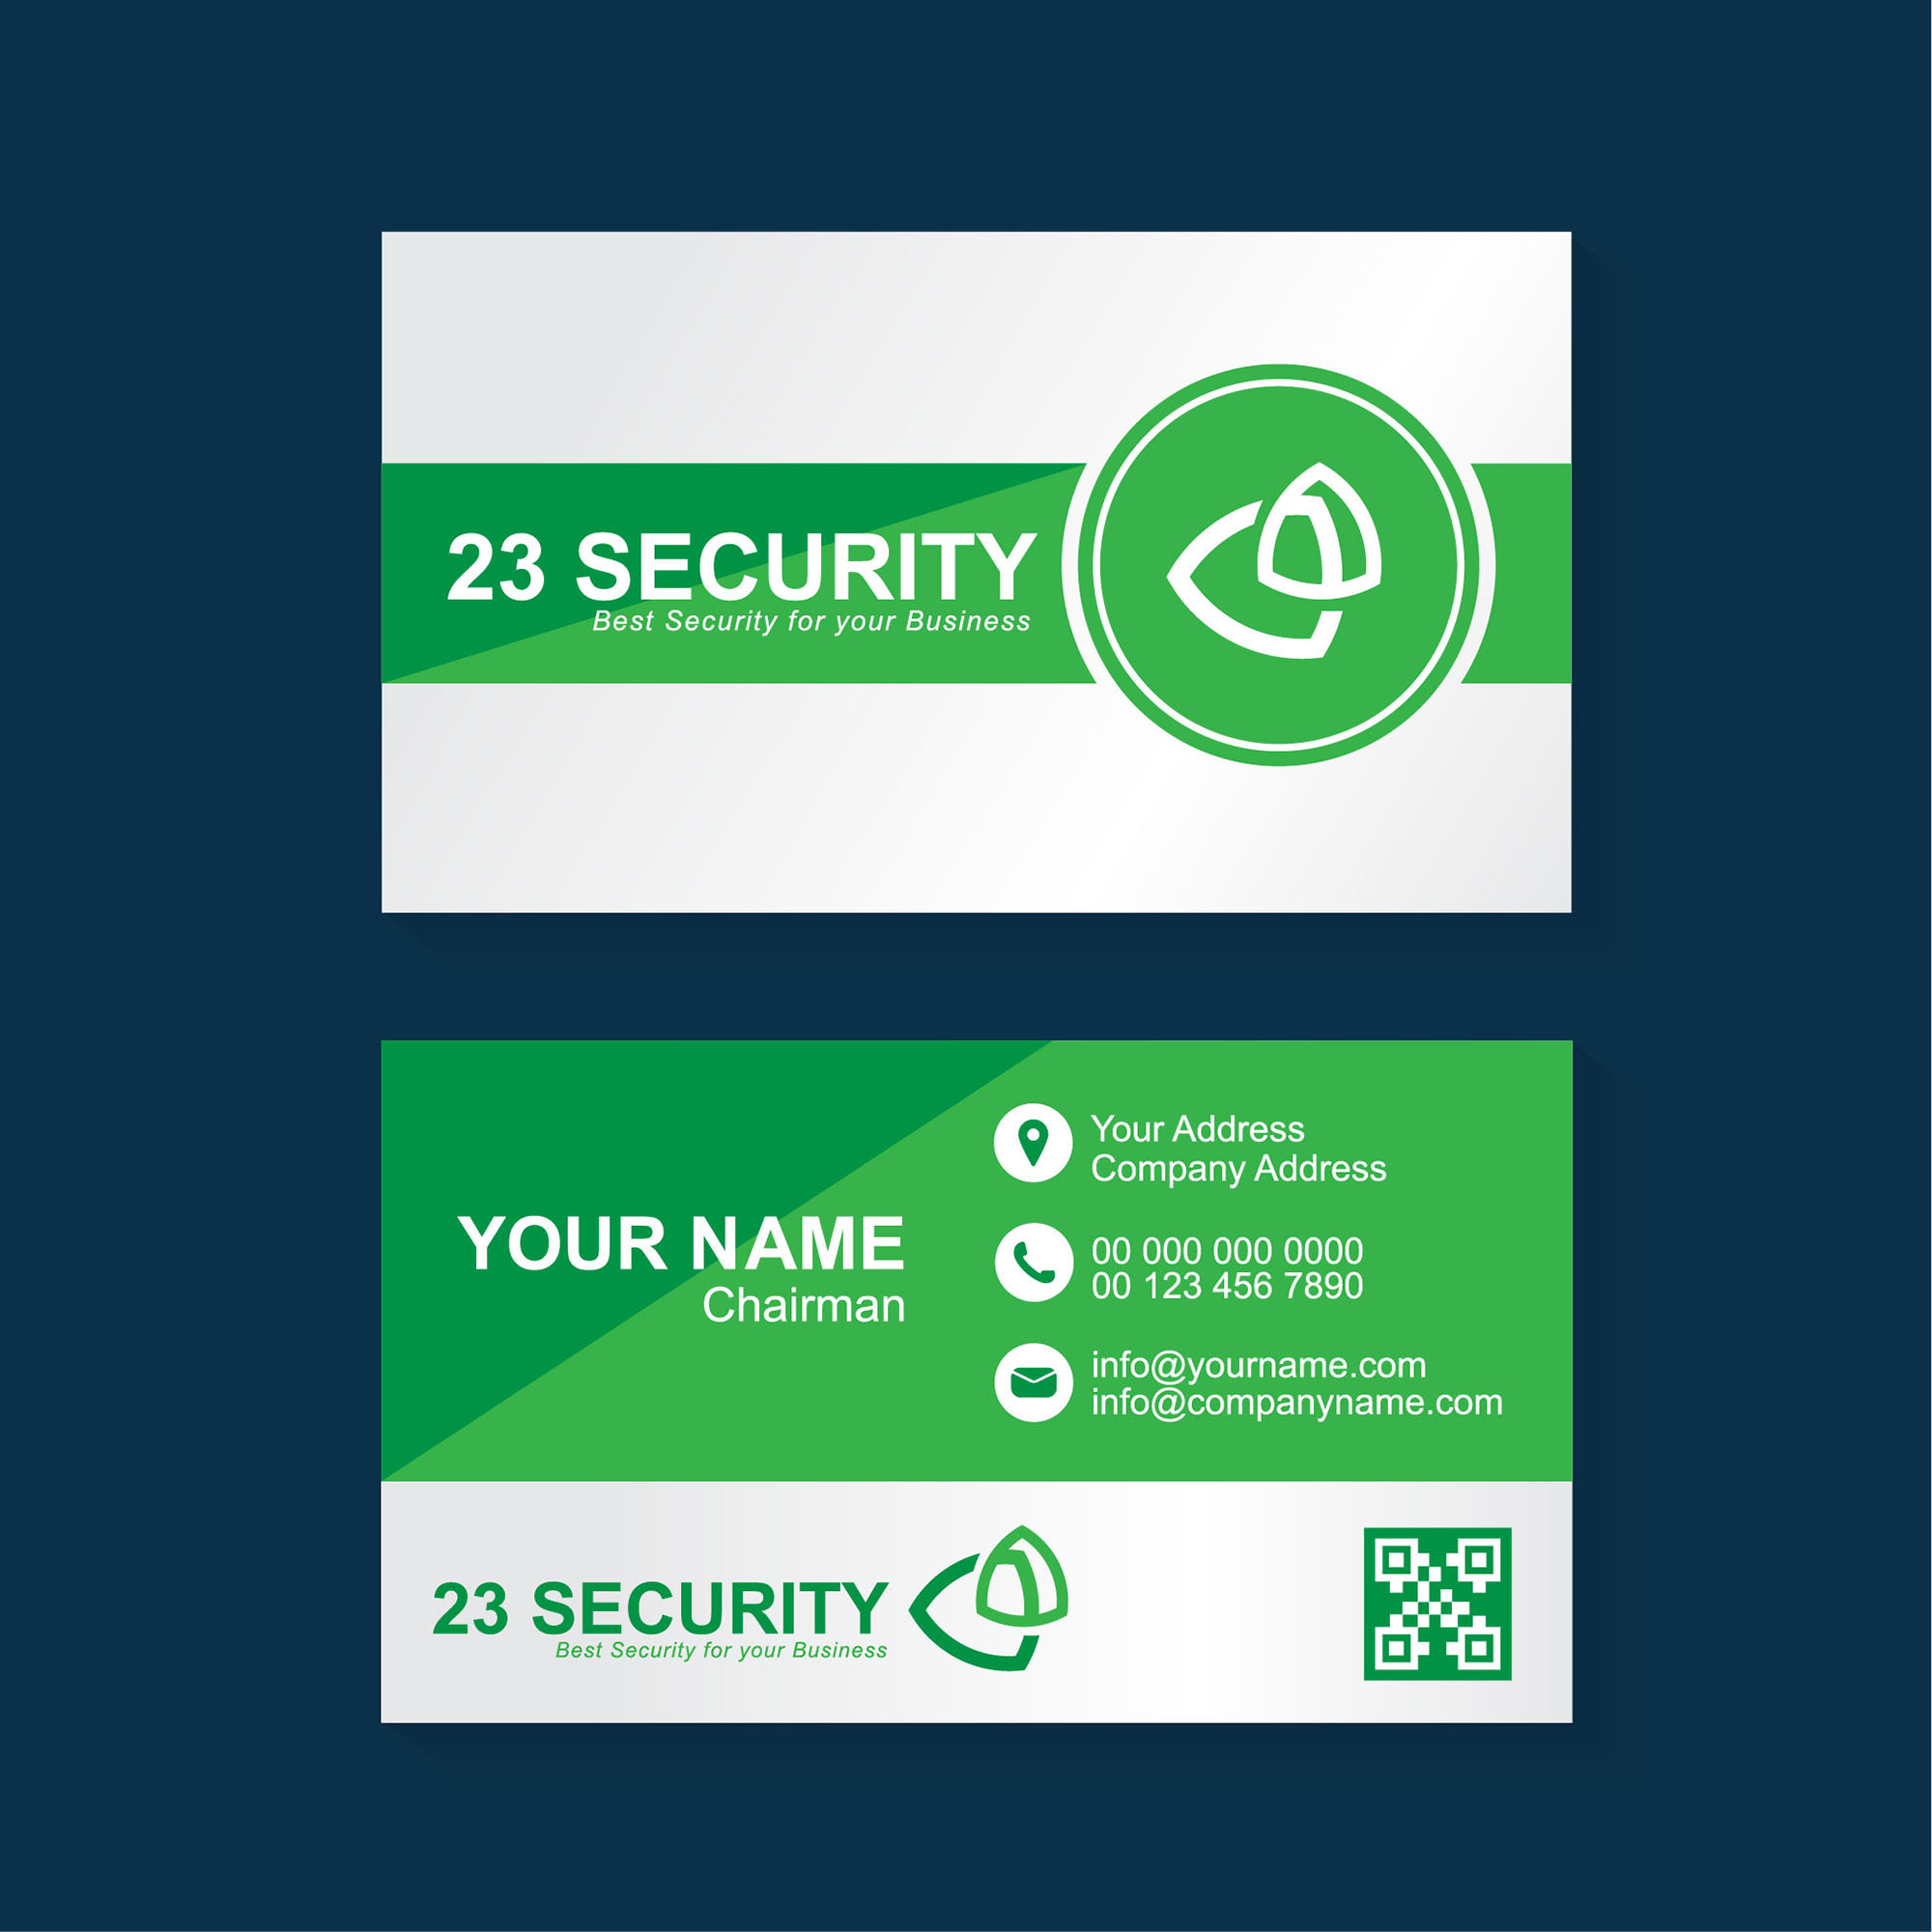 Security business card template free download wisxi business card business cards business card design business card template design templates fbccfo Gallery